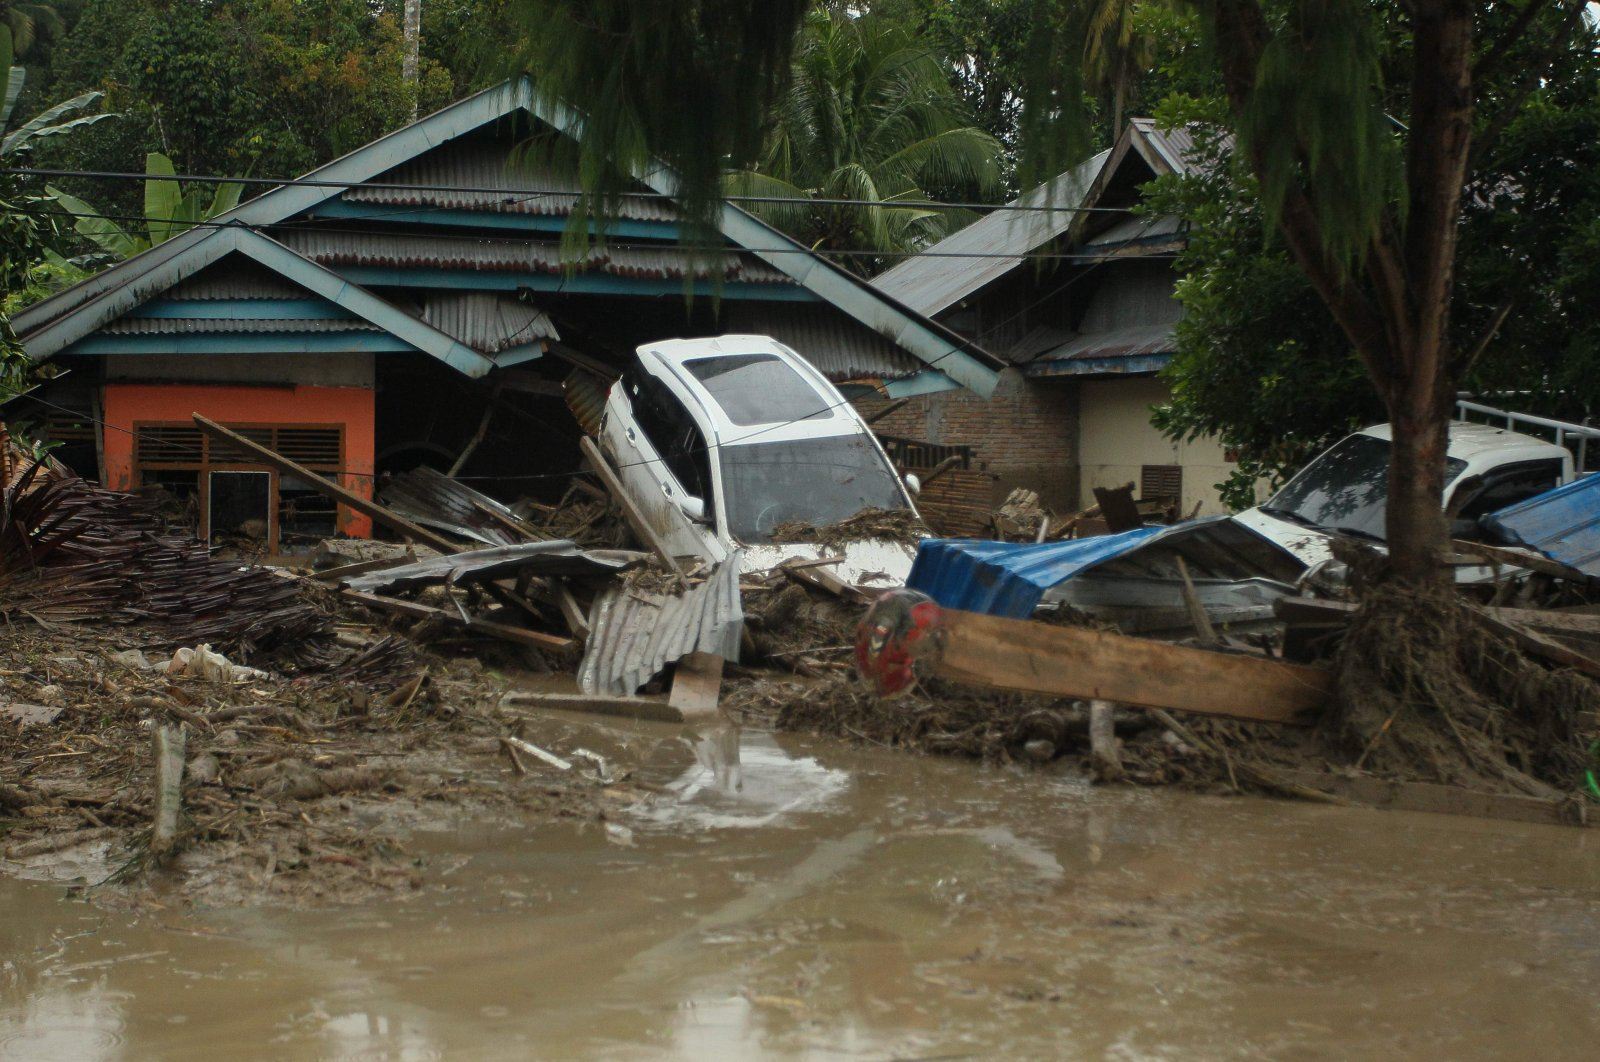 A general view shows vehicles swept away by flash floods next to houses in Radda village in North Luwu regency, South Sulawesi on July 14, 2020. (AFP Photo)